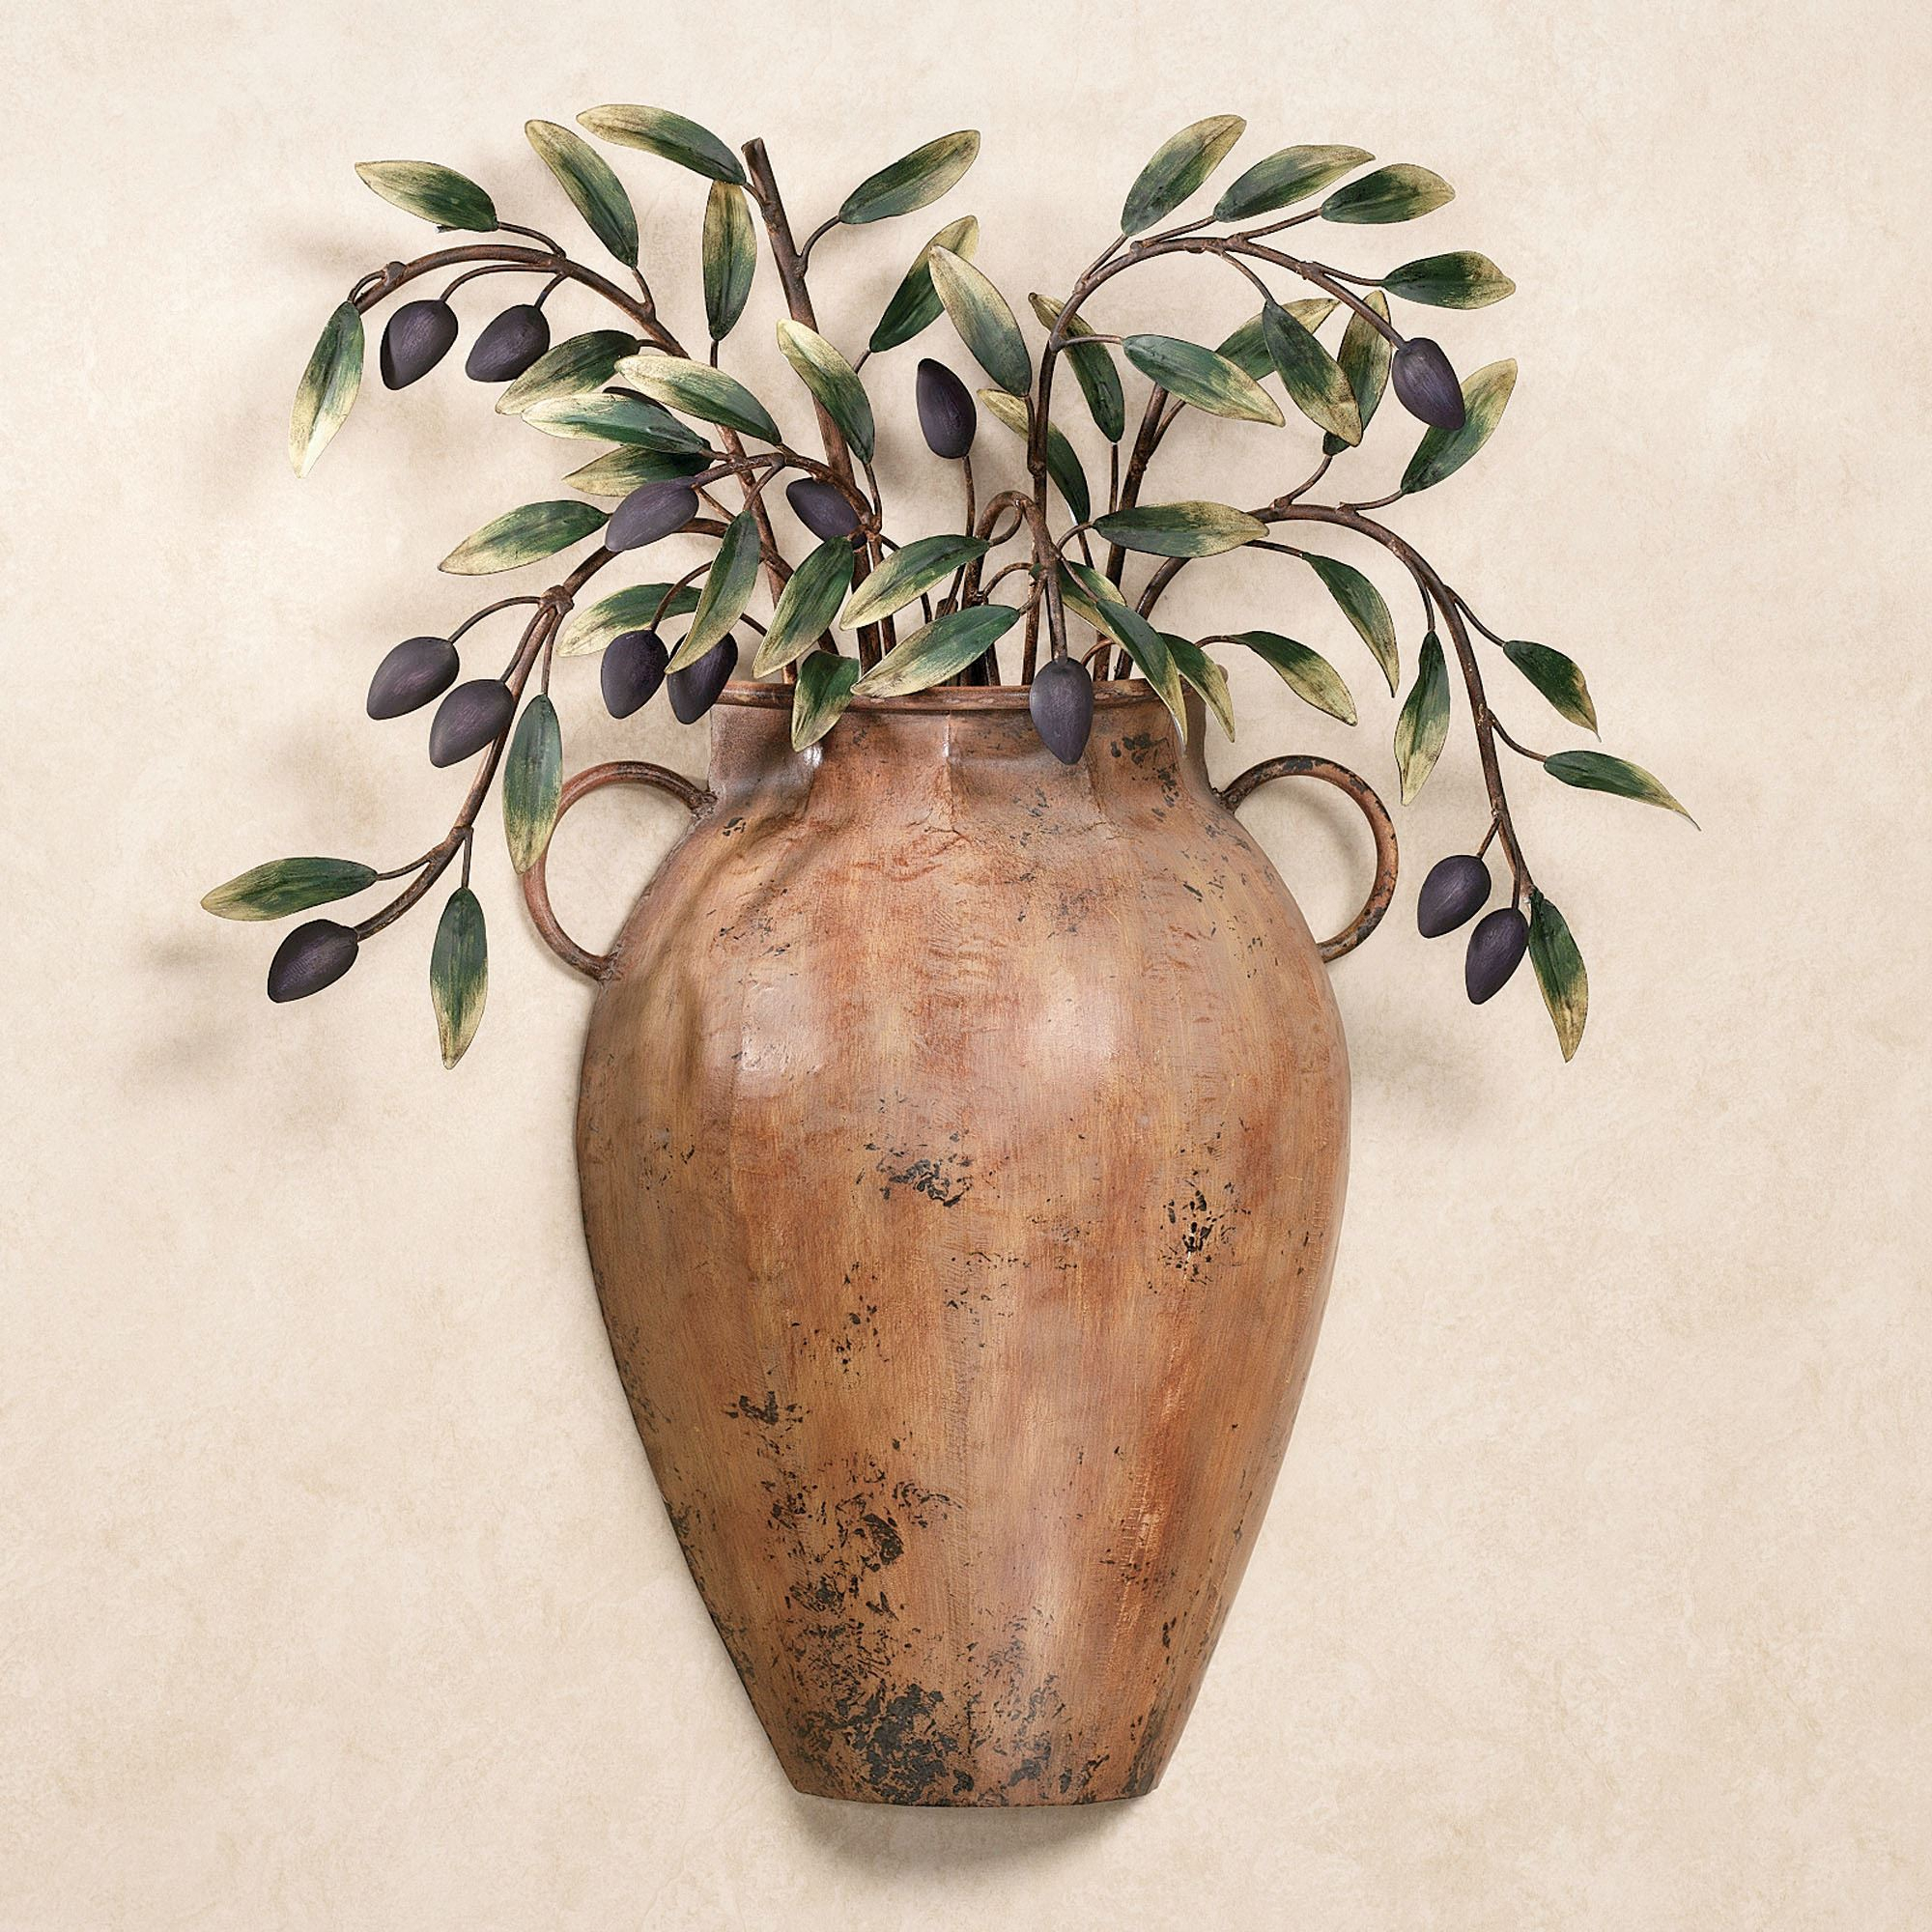 Valetta Vaso Con Olives Metal Wall Sculpture for Scattered Metal Italian Plates Wall Decor (Image 26 of 30)